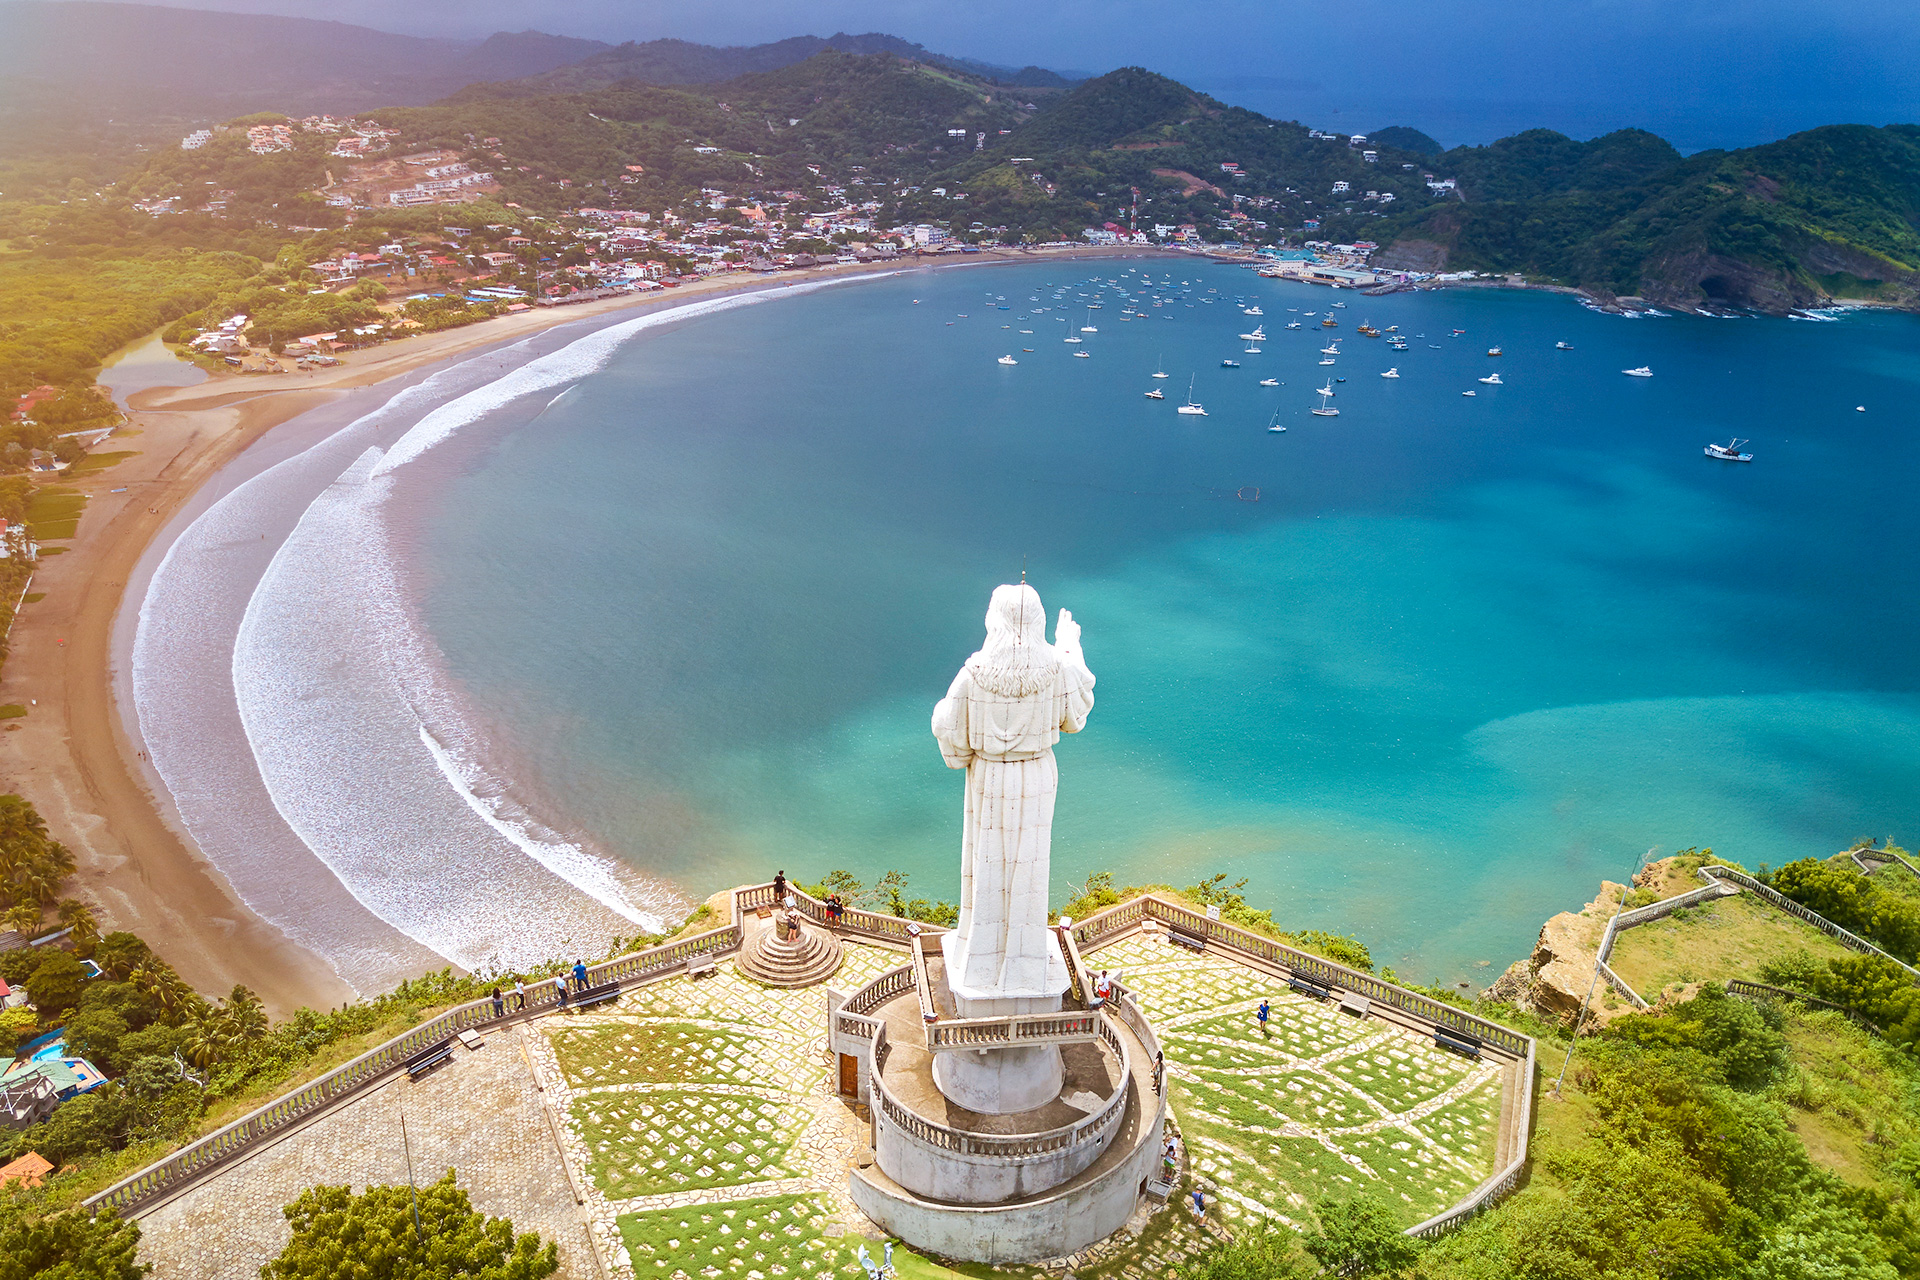 Tourist tour for jesus christ statue in Nicaragua.; Courtesy of PixieMe/Shutterstock